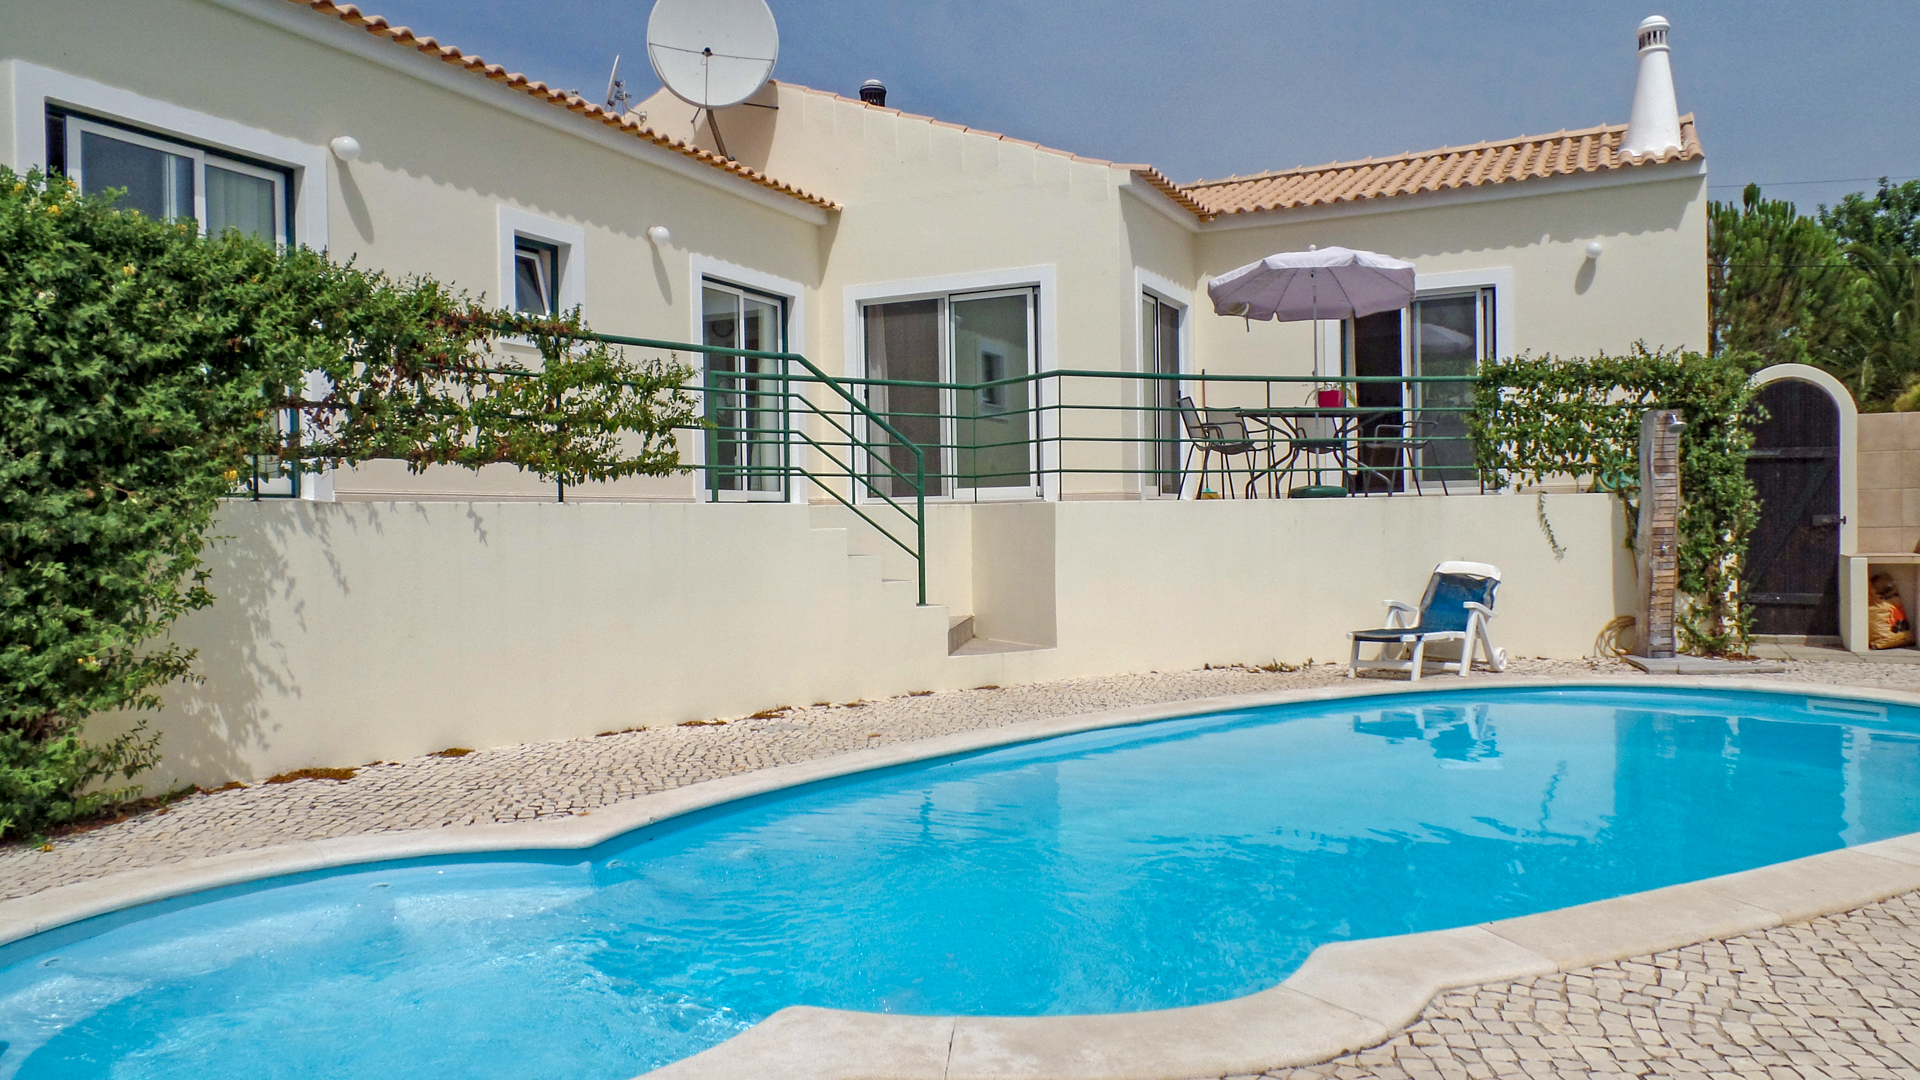 3 bedroom bungalow style villa with pool, north of Alvor | LG695